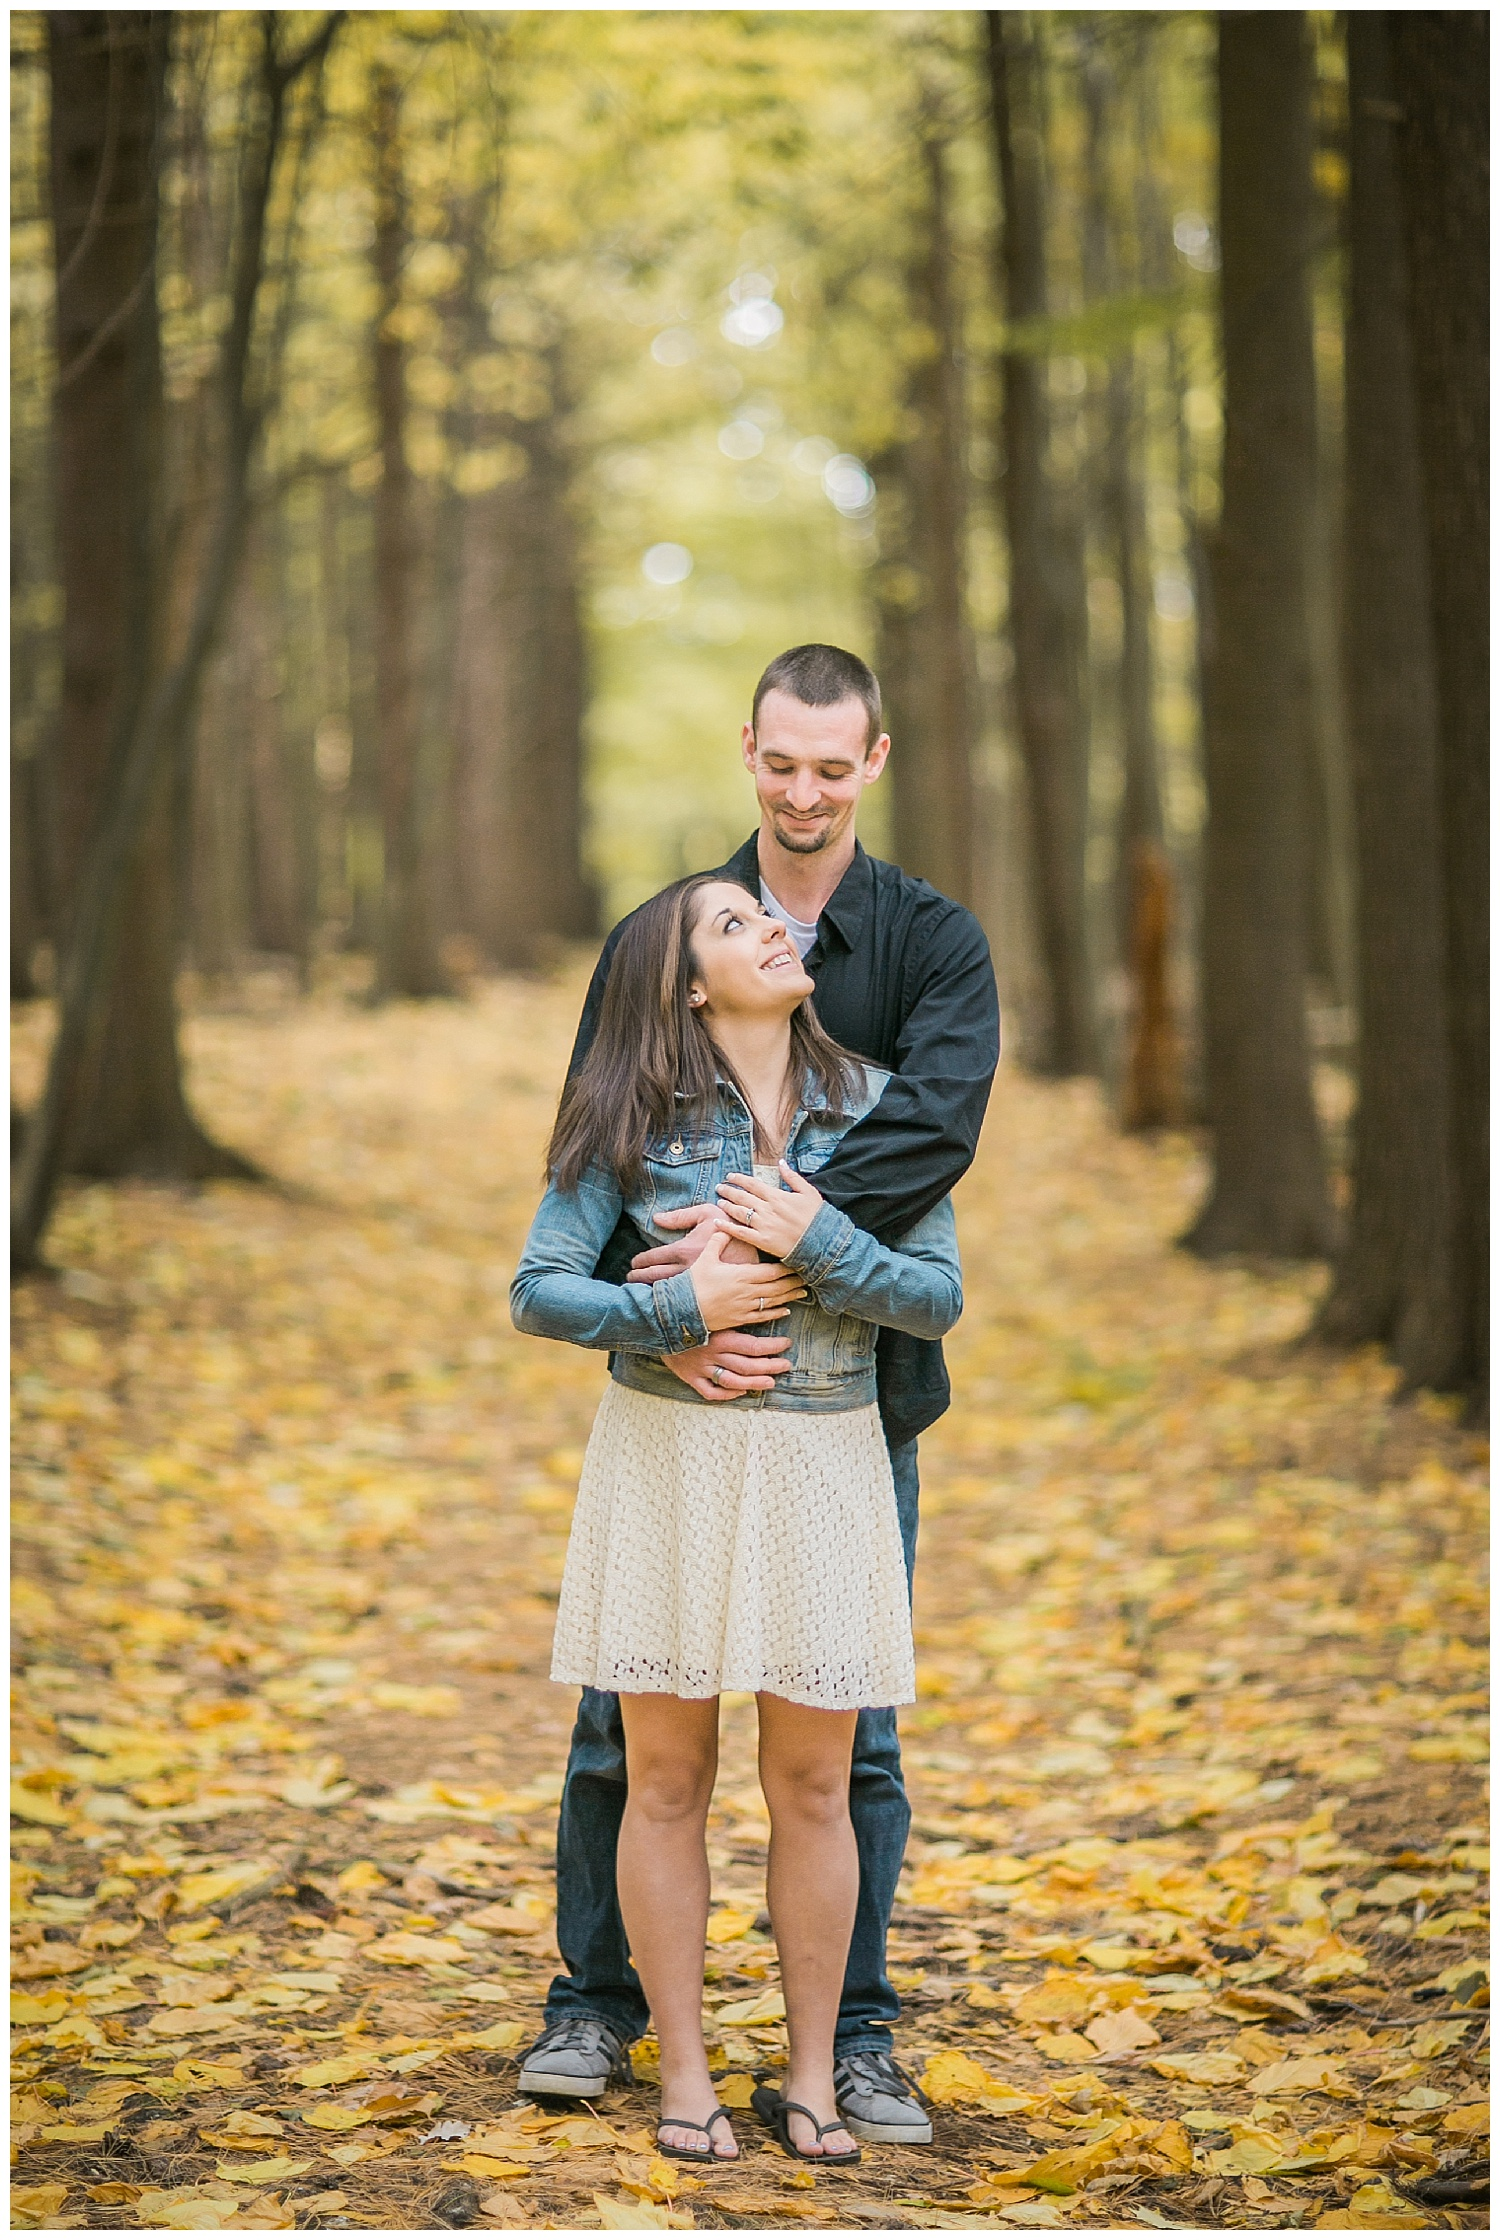 Gina and Tony - Engagement session - letchworth state park - lass and beau_0546.jpg